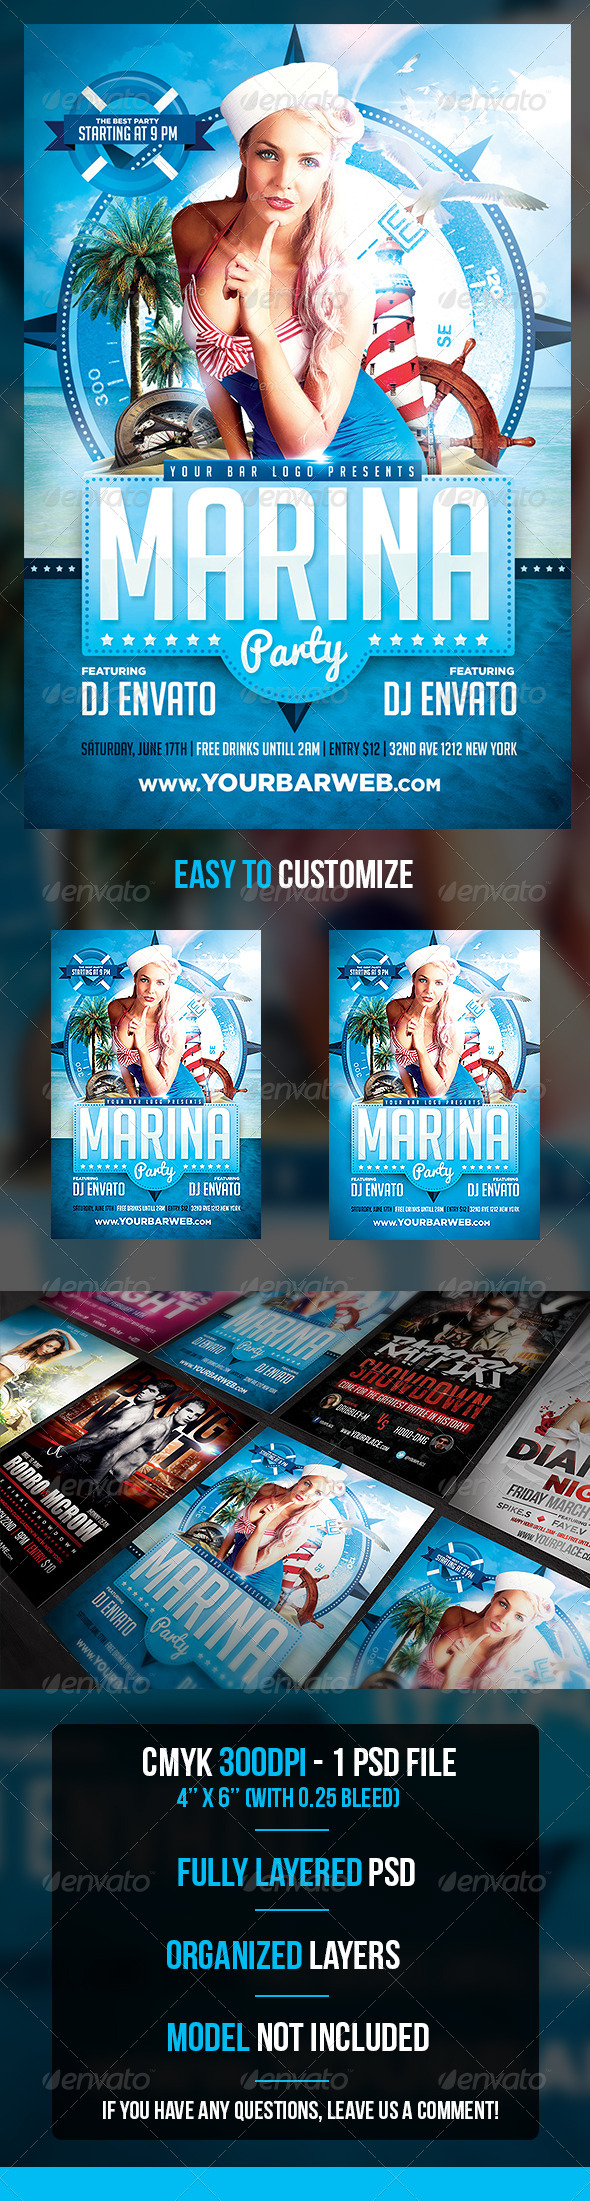 Marina Party Flyer Template - Flyers Print Templates